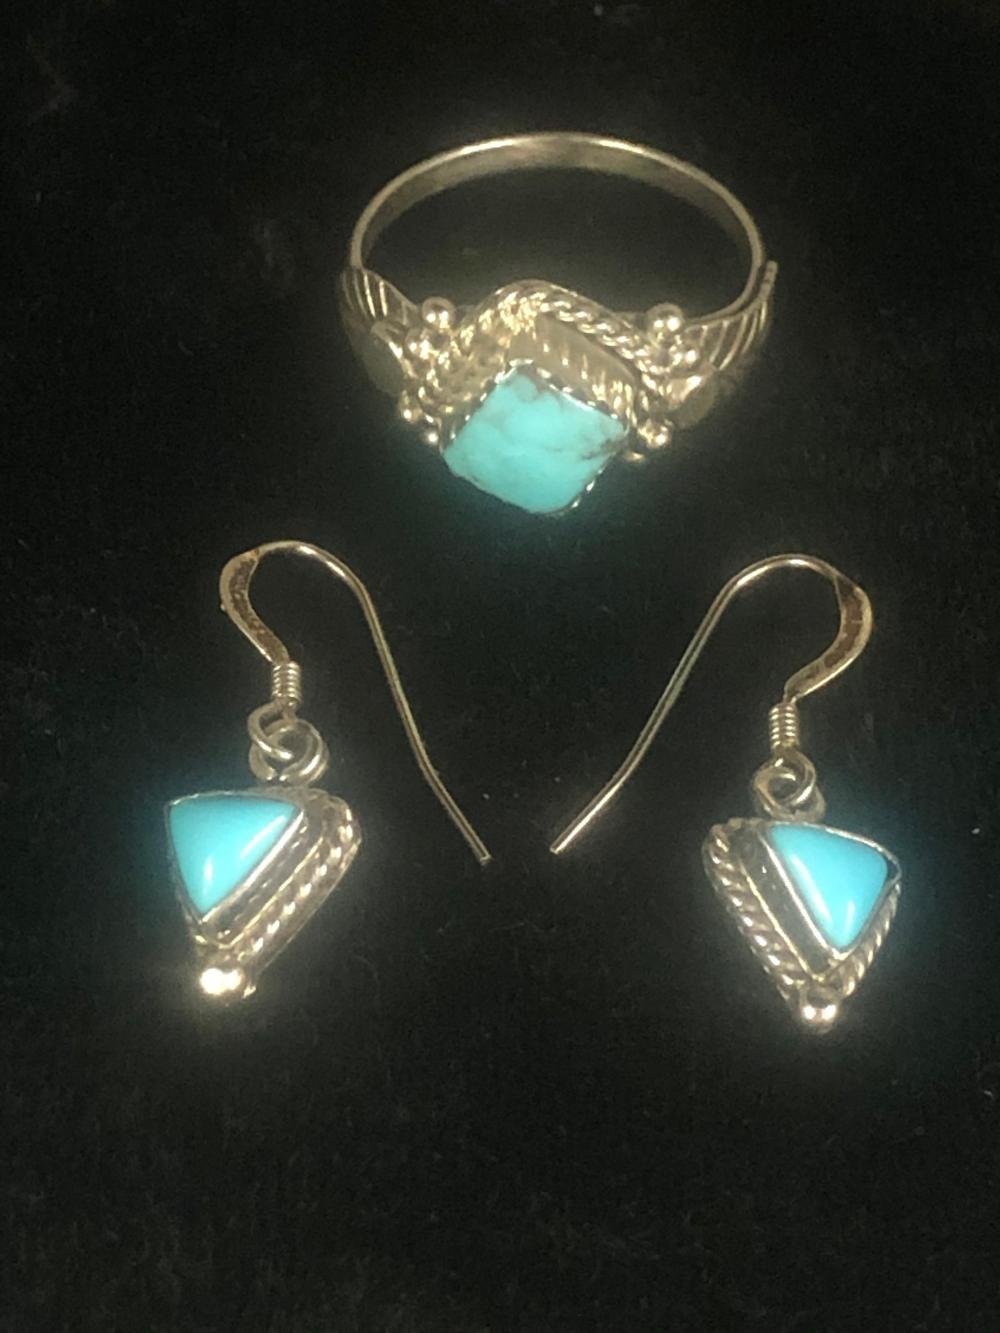 Turquoise earring and ring 'set'